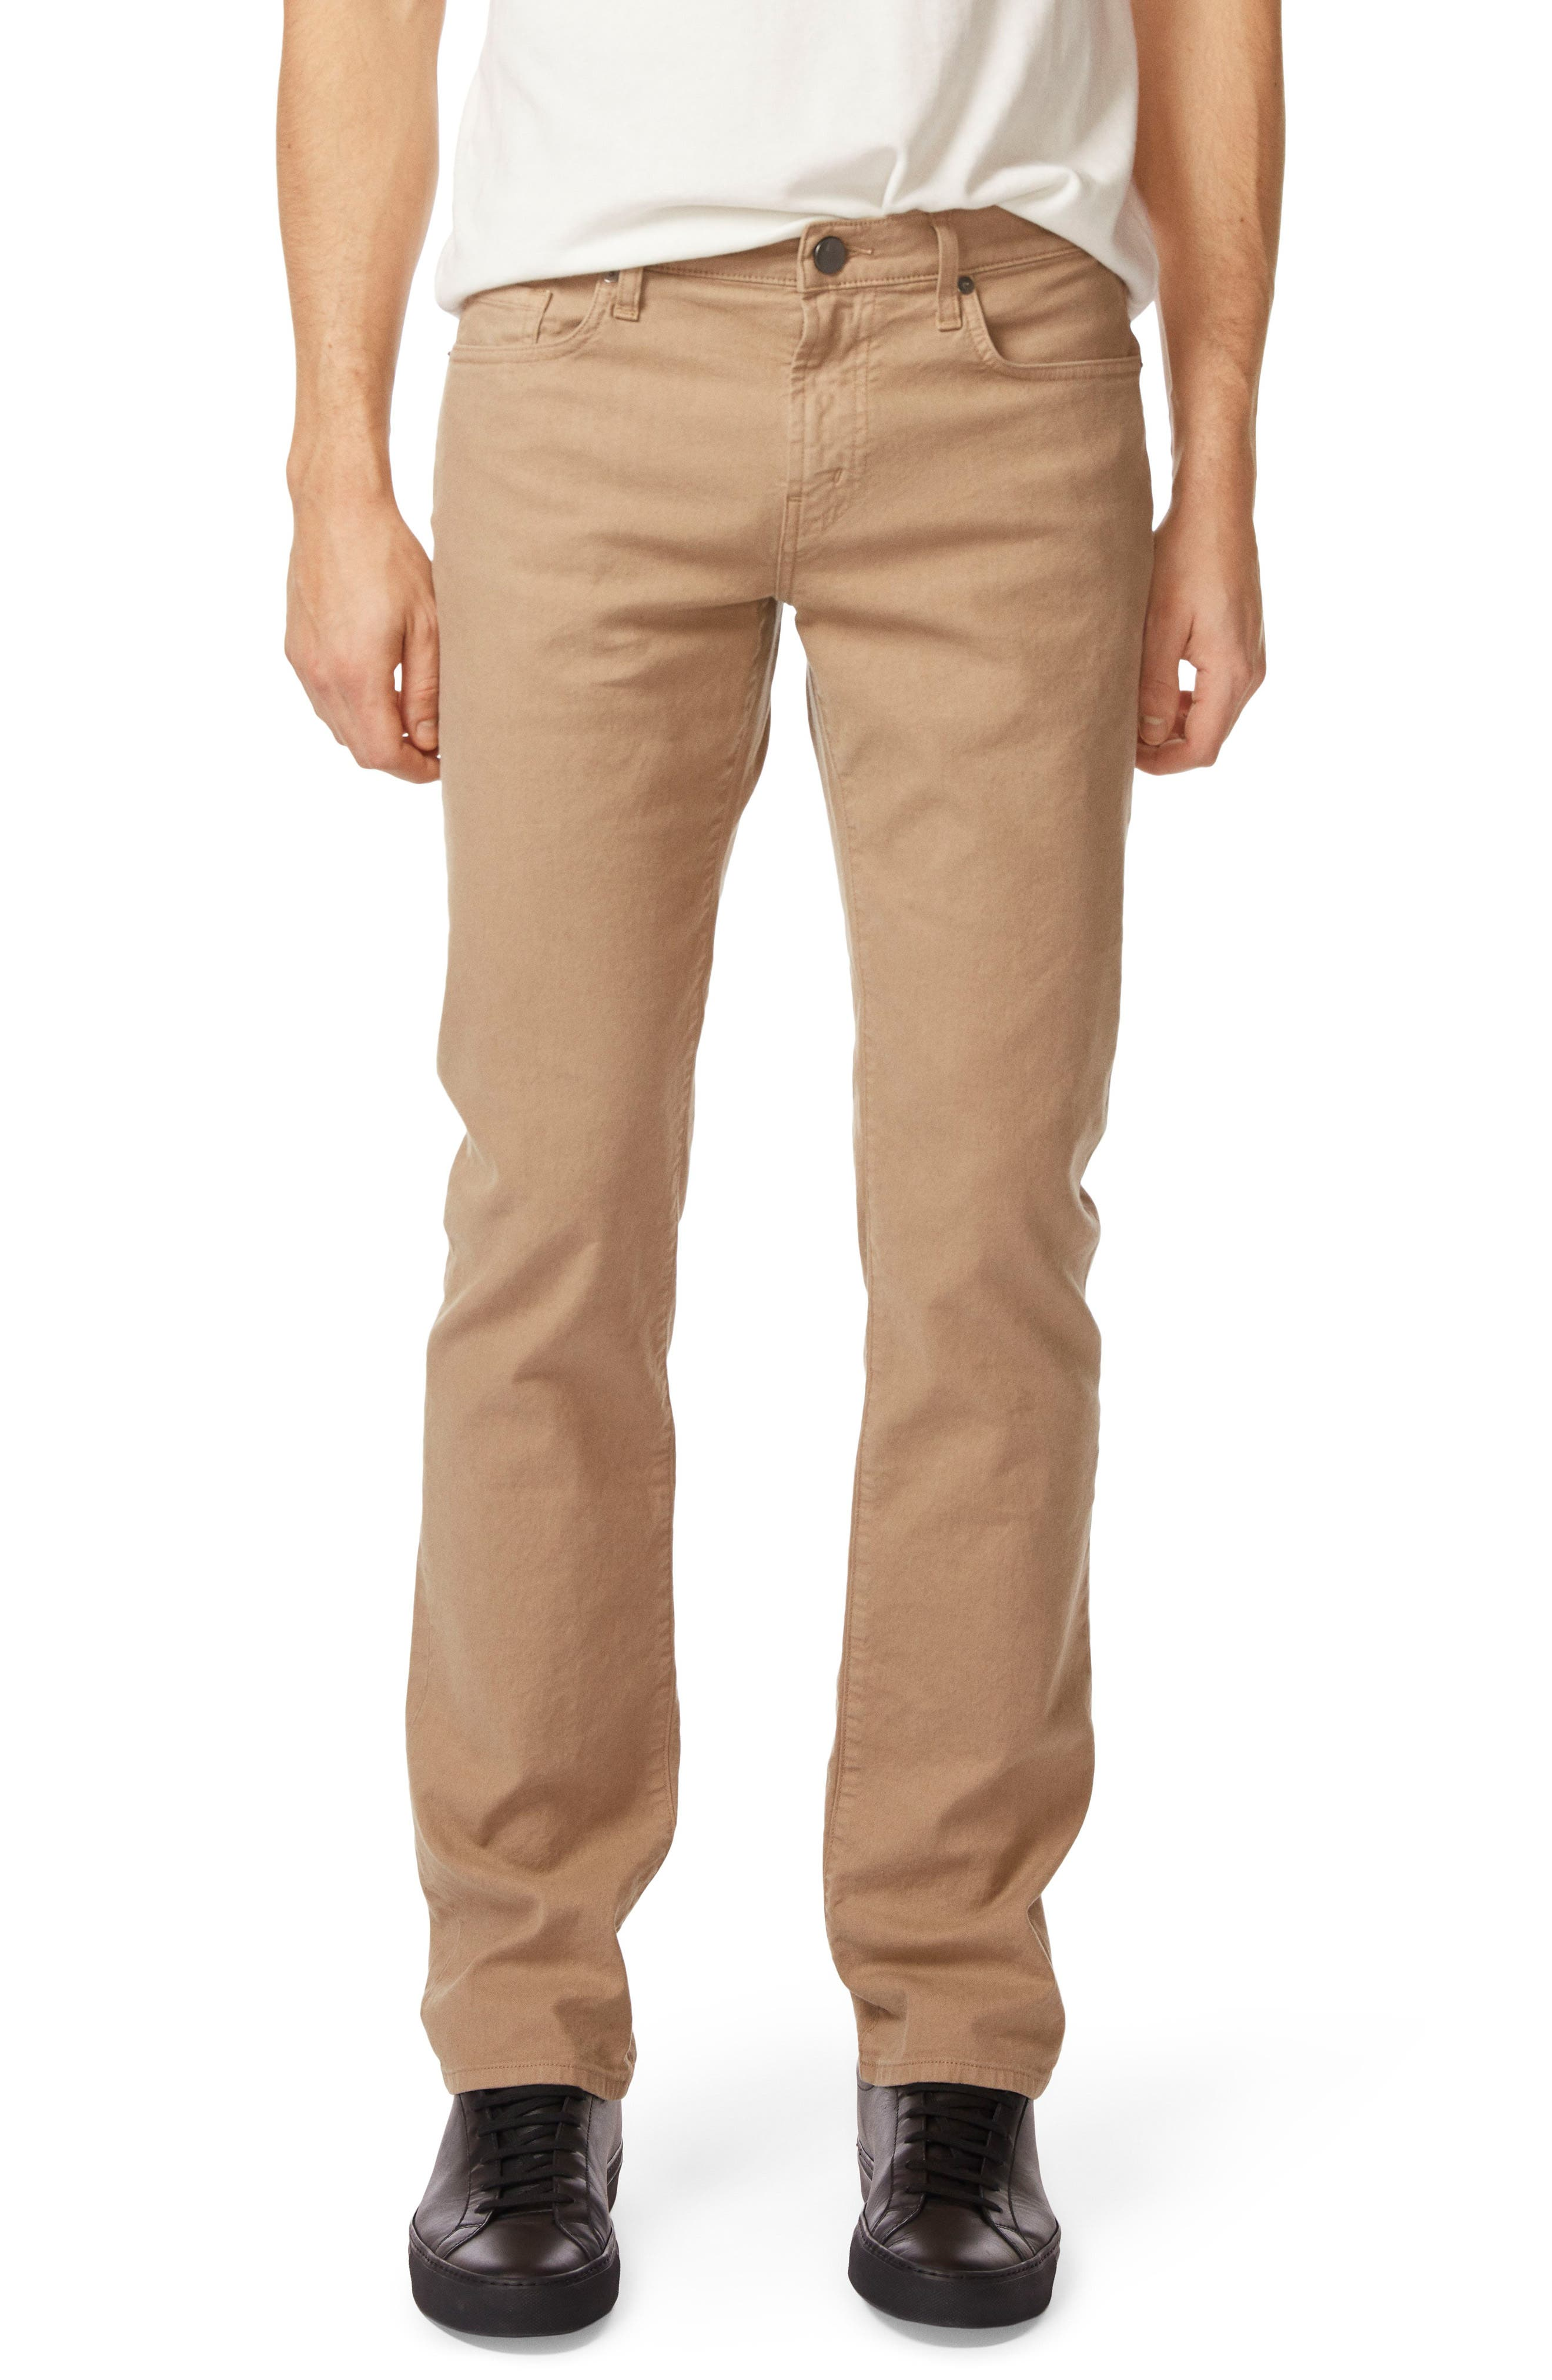 Kane Straight Fit Pant,                         Main,                         color, RUMEX